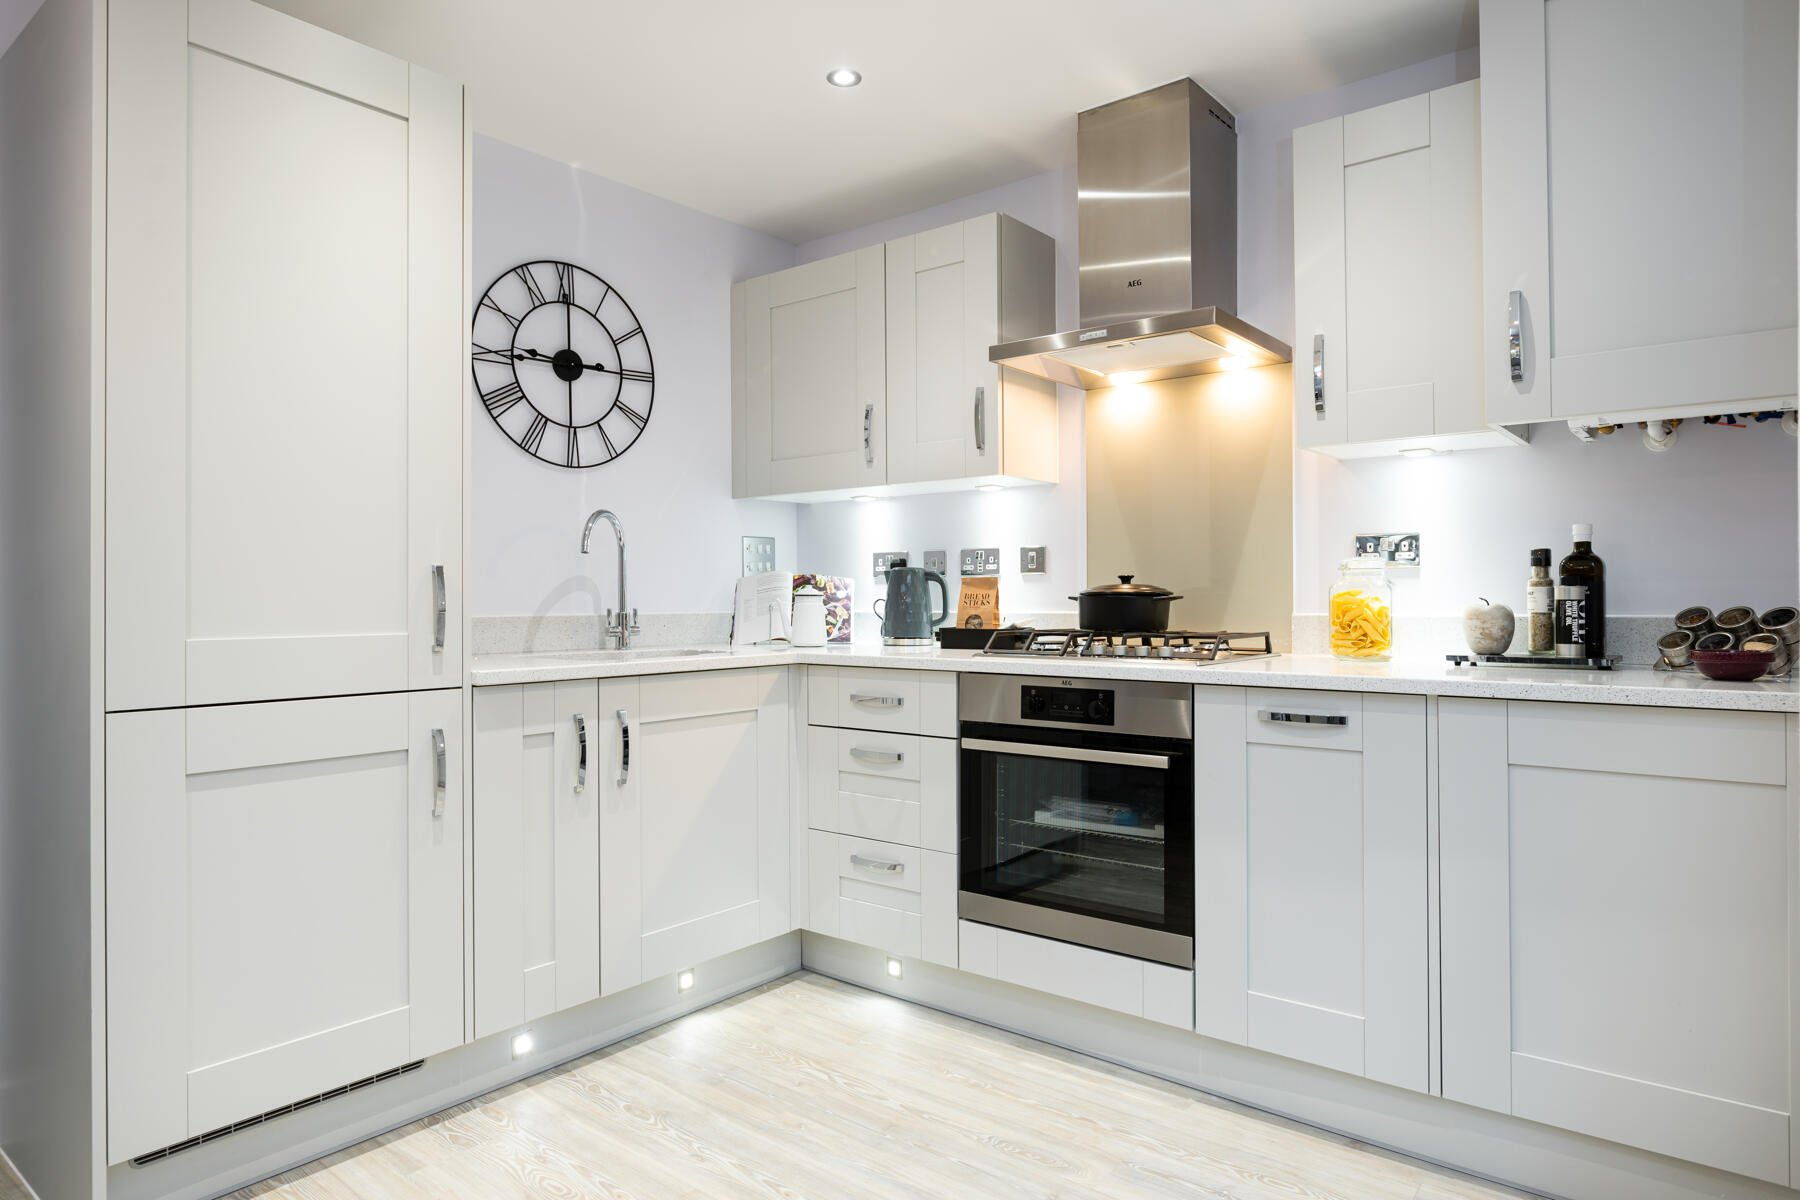 TW ST_Dukes Quarter_Longmoor_Kitchen 2_1800x1200